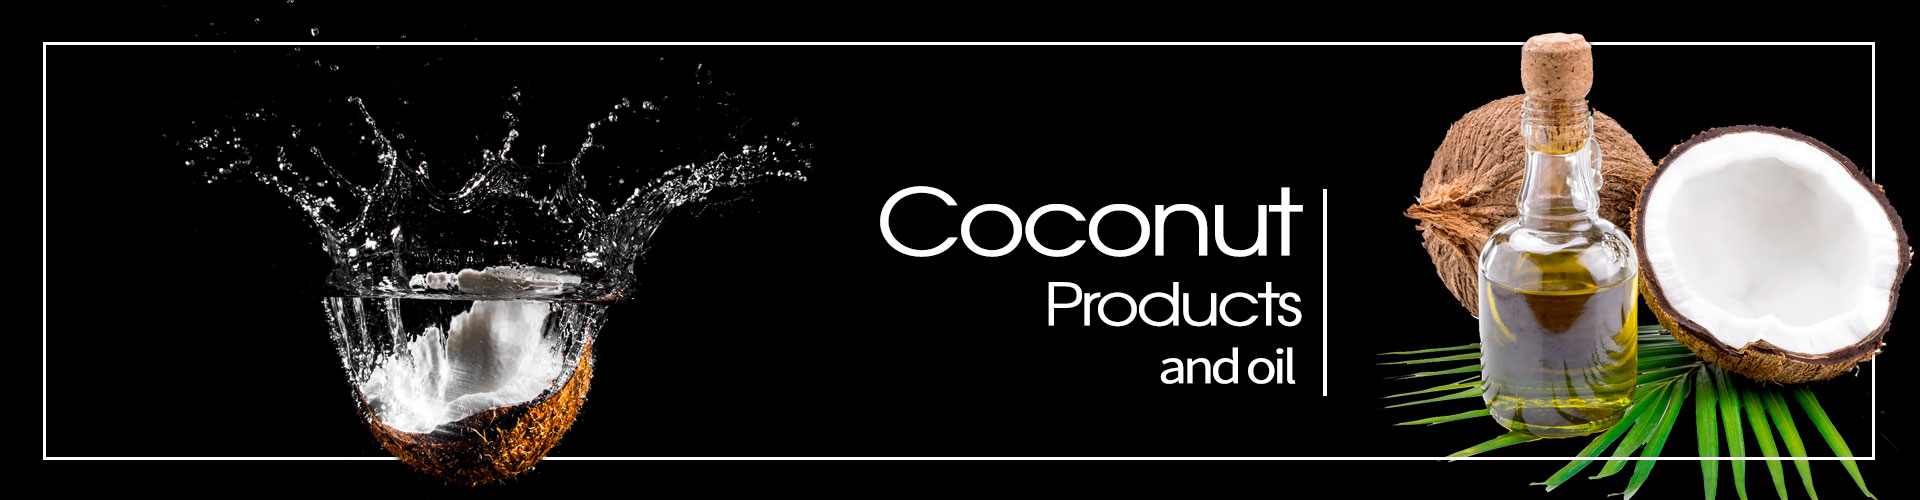 Coconut products & Oil